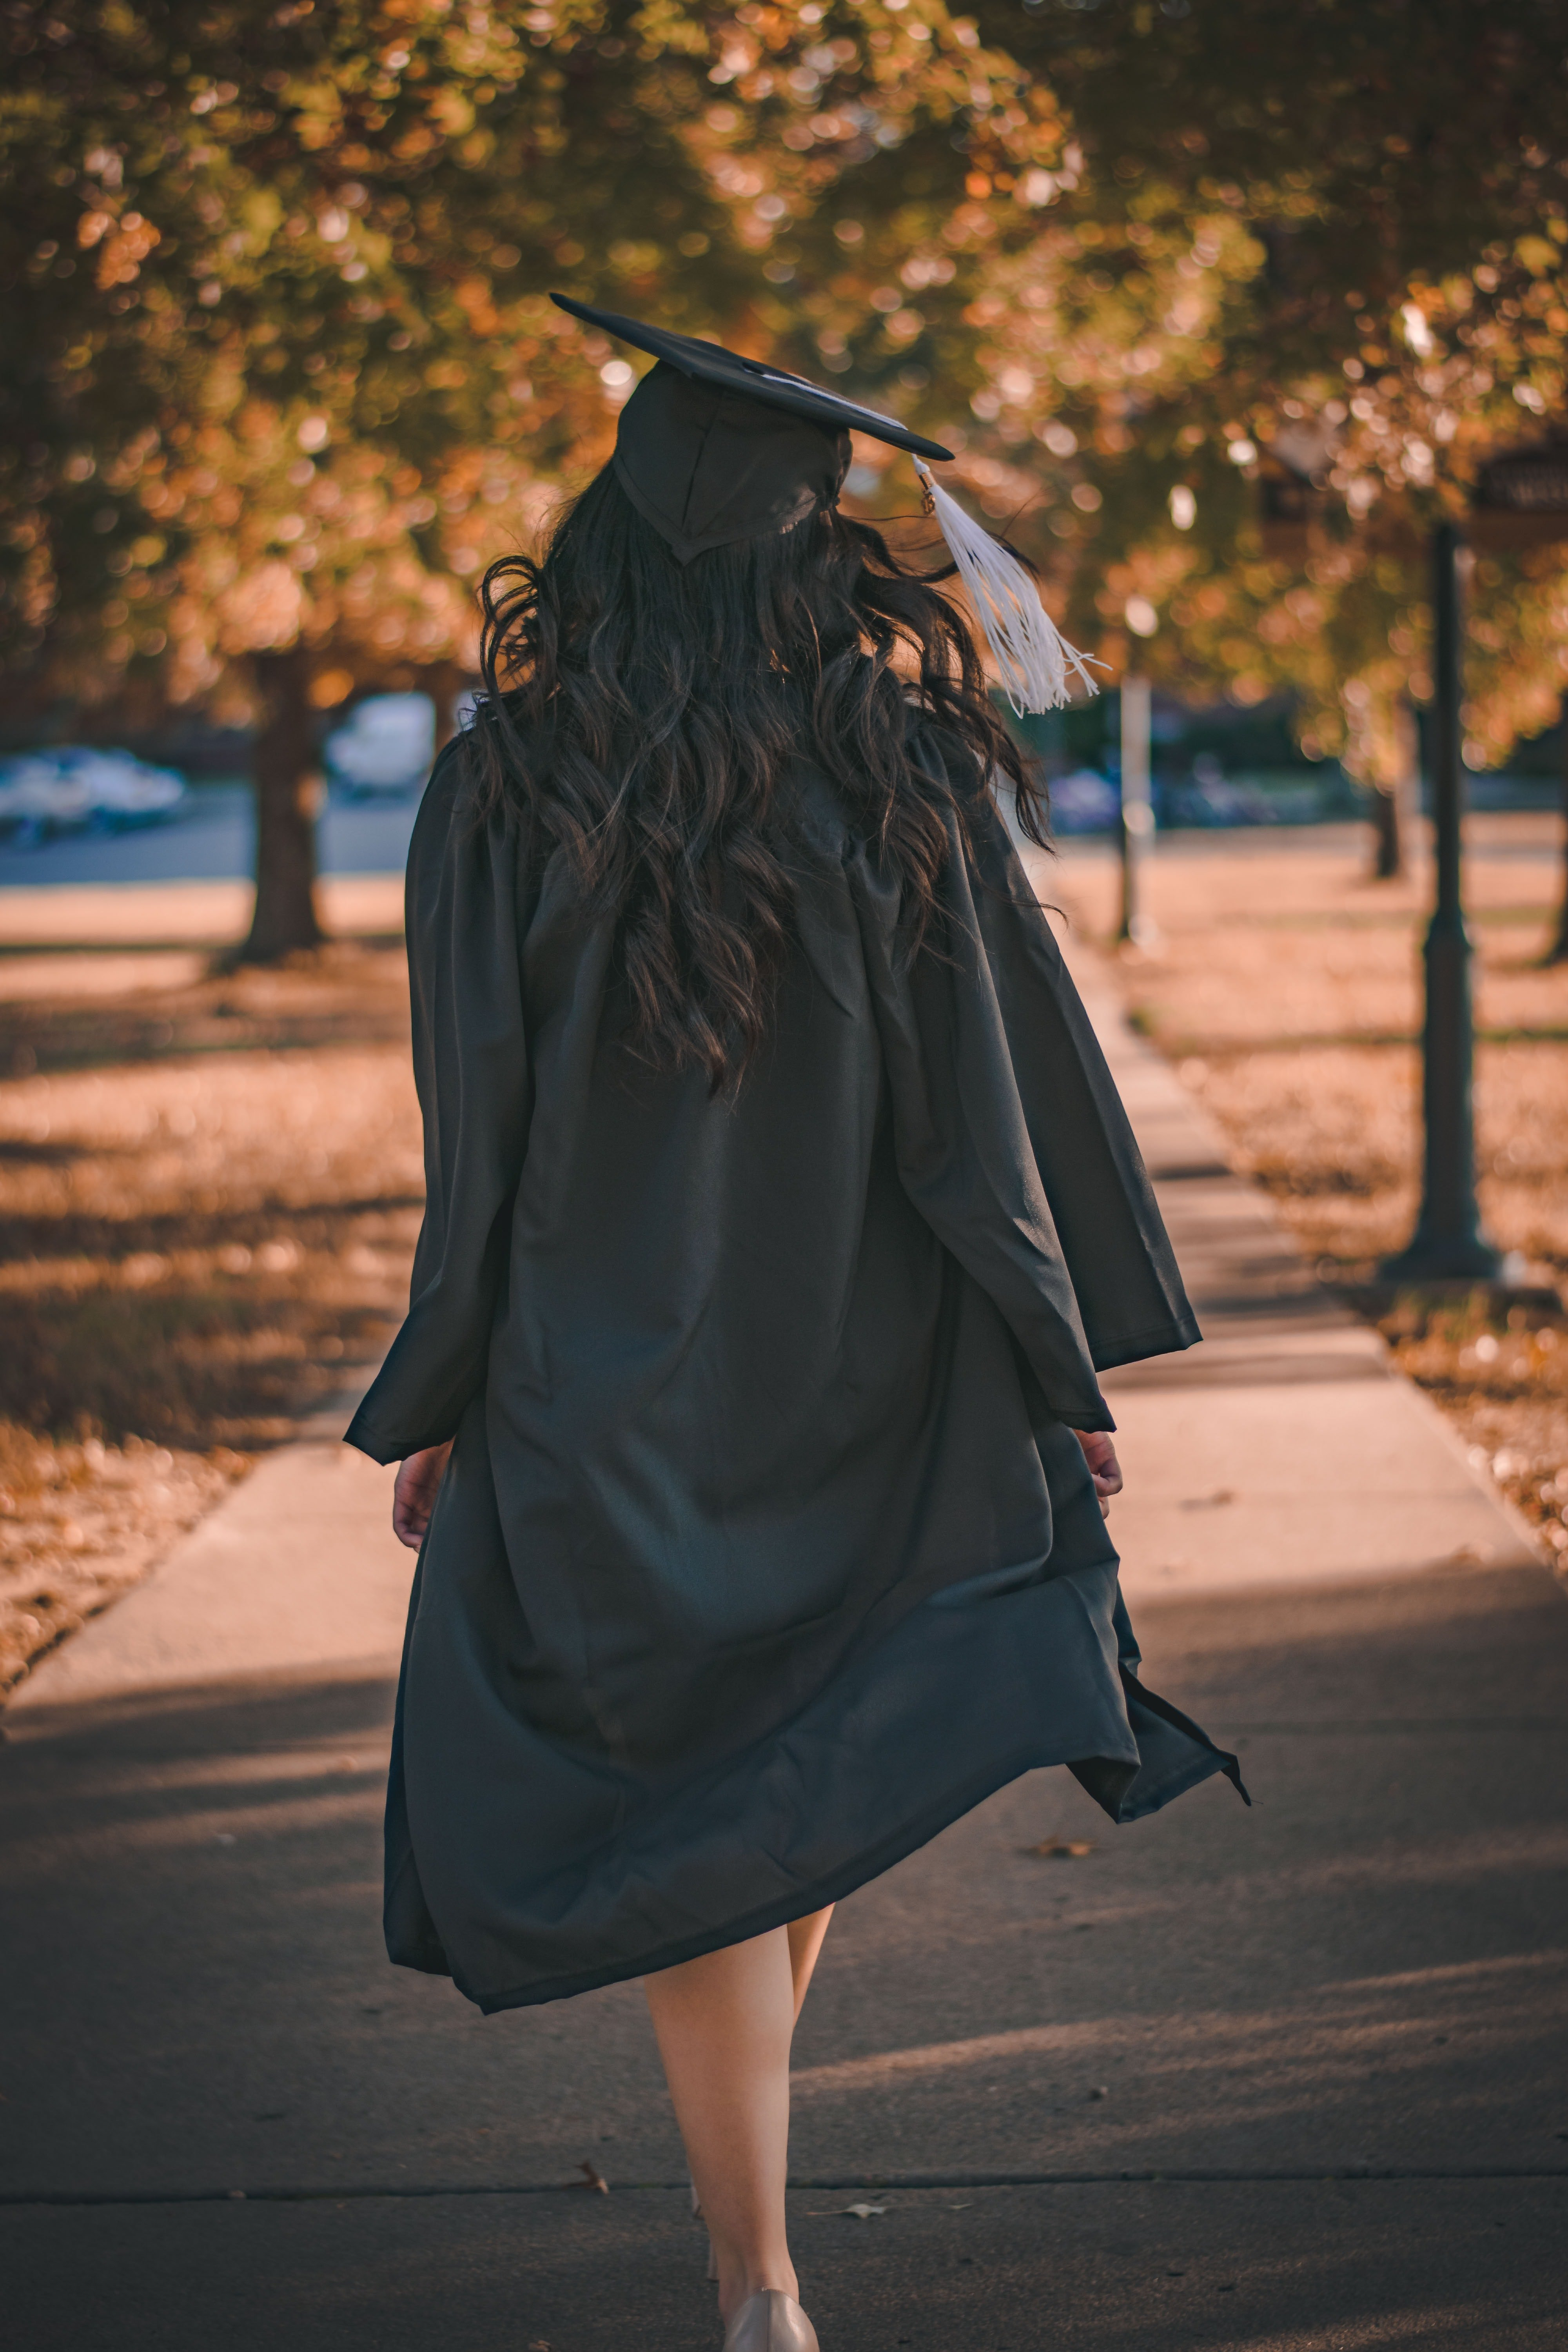 A woman walks away after her graduation ceremony | Source: Pexels